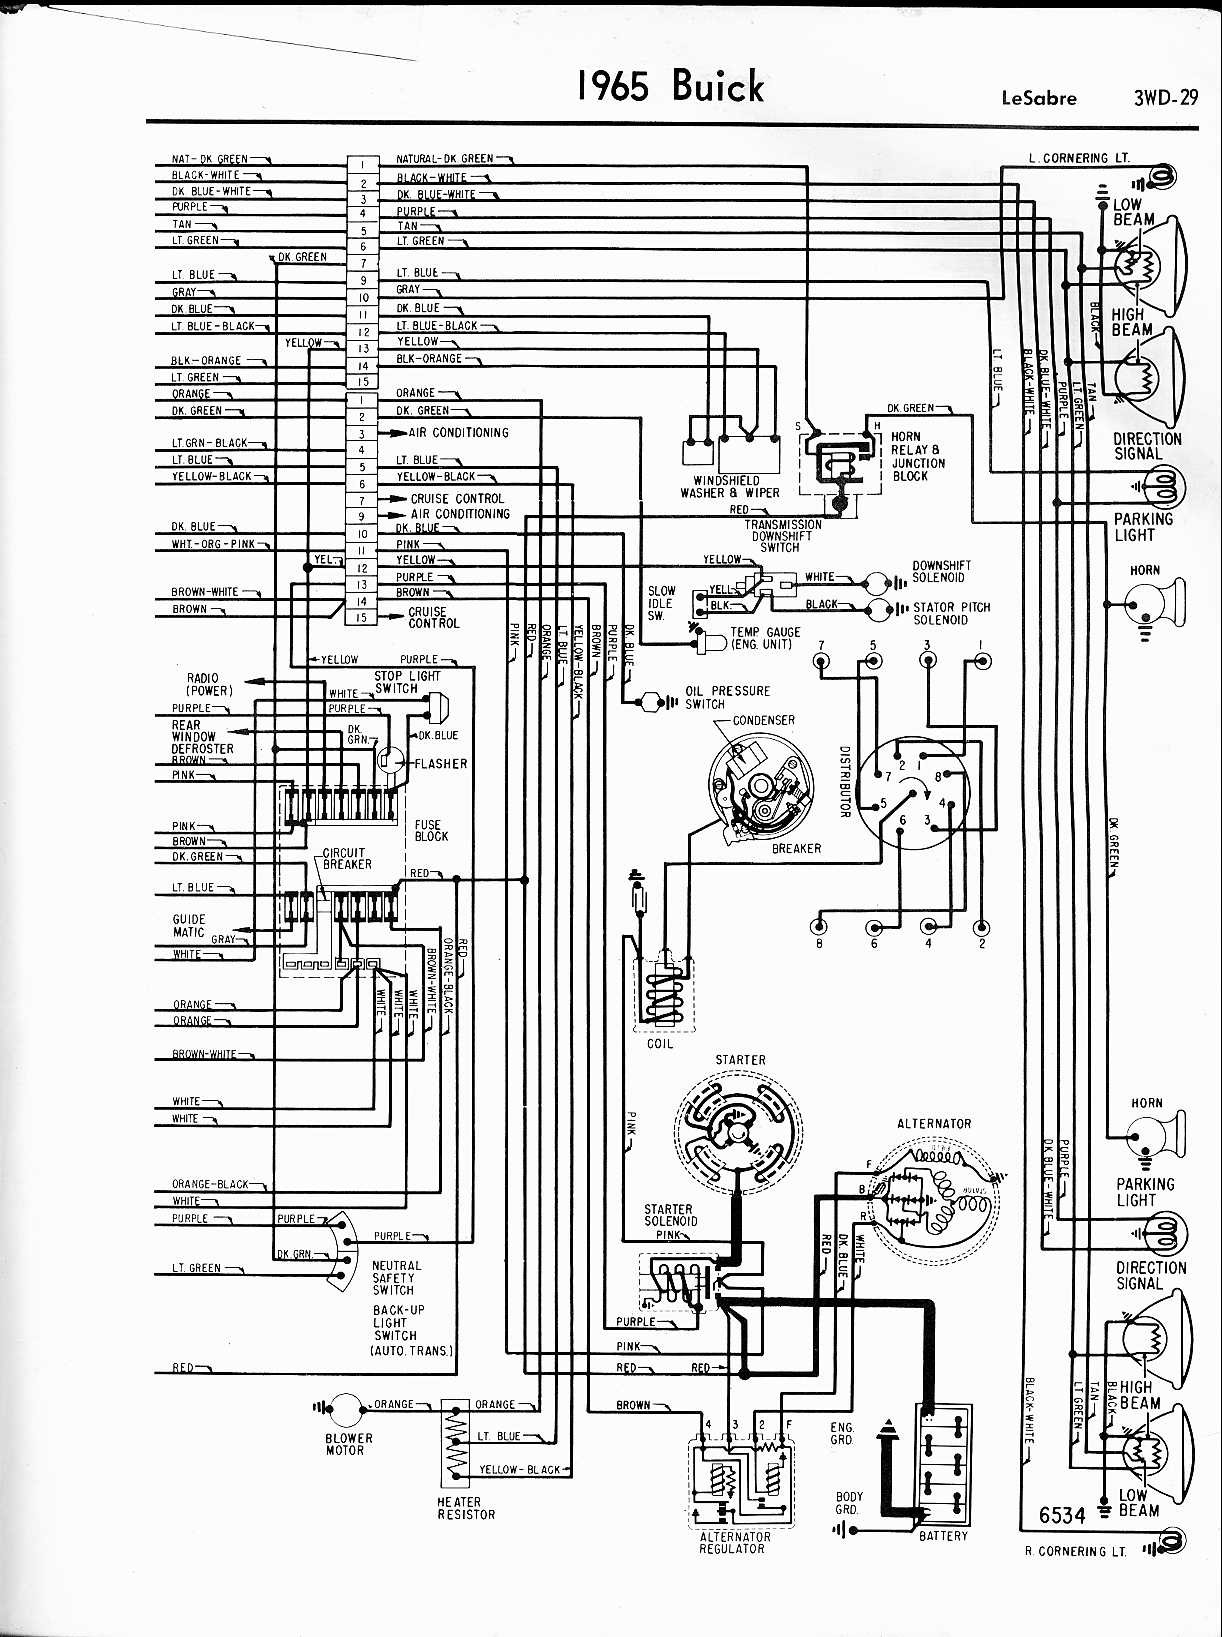 2000 Mustang Engine Diagram Blower Motor Wiring For 96 Ford Ranger Furthermore